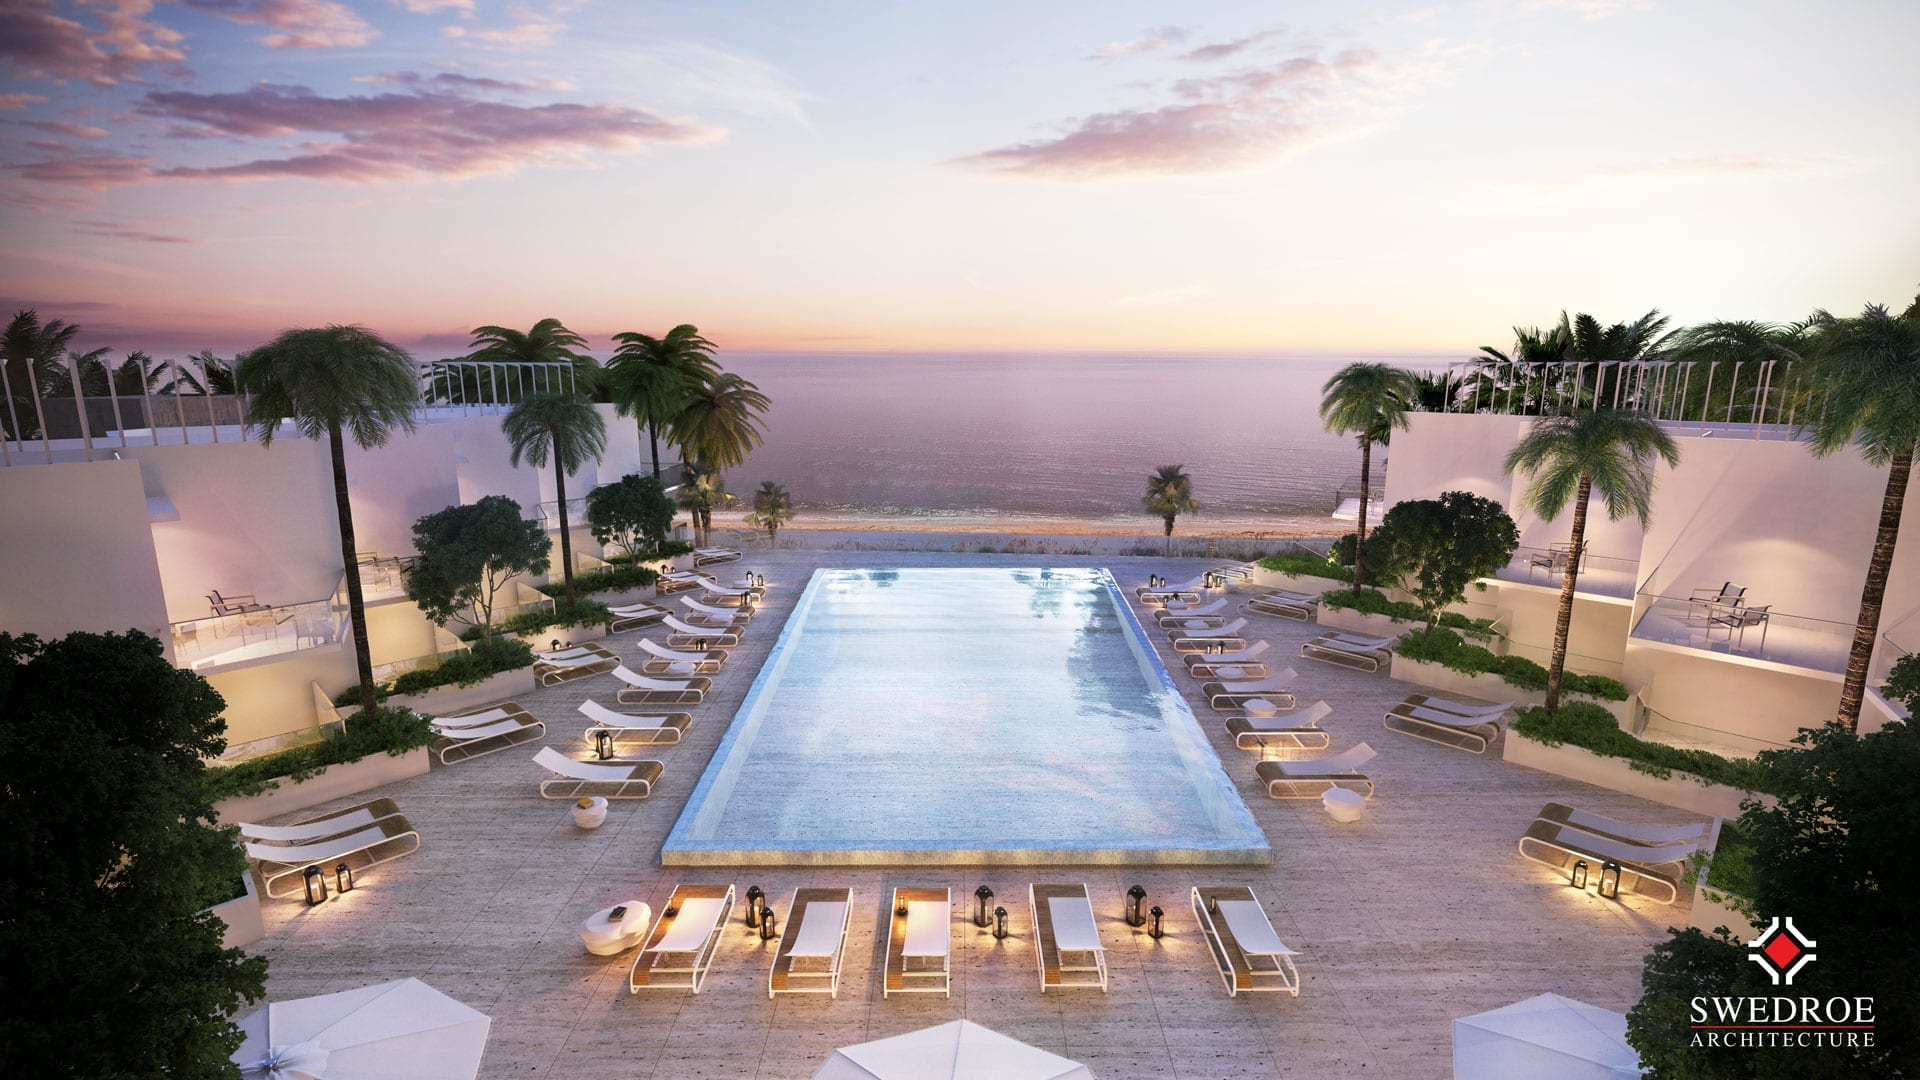 Turnberry Ocean Club - Swedroe Architecture - Miami Architect